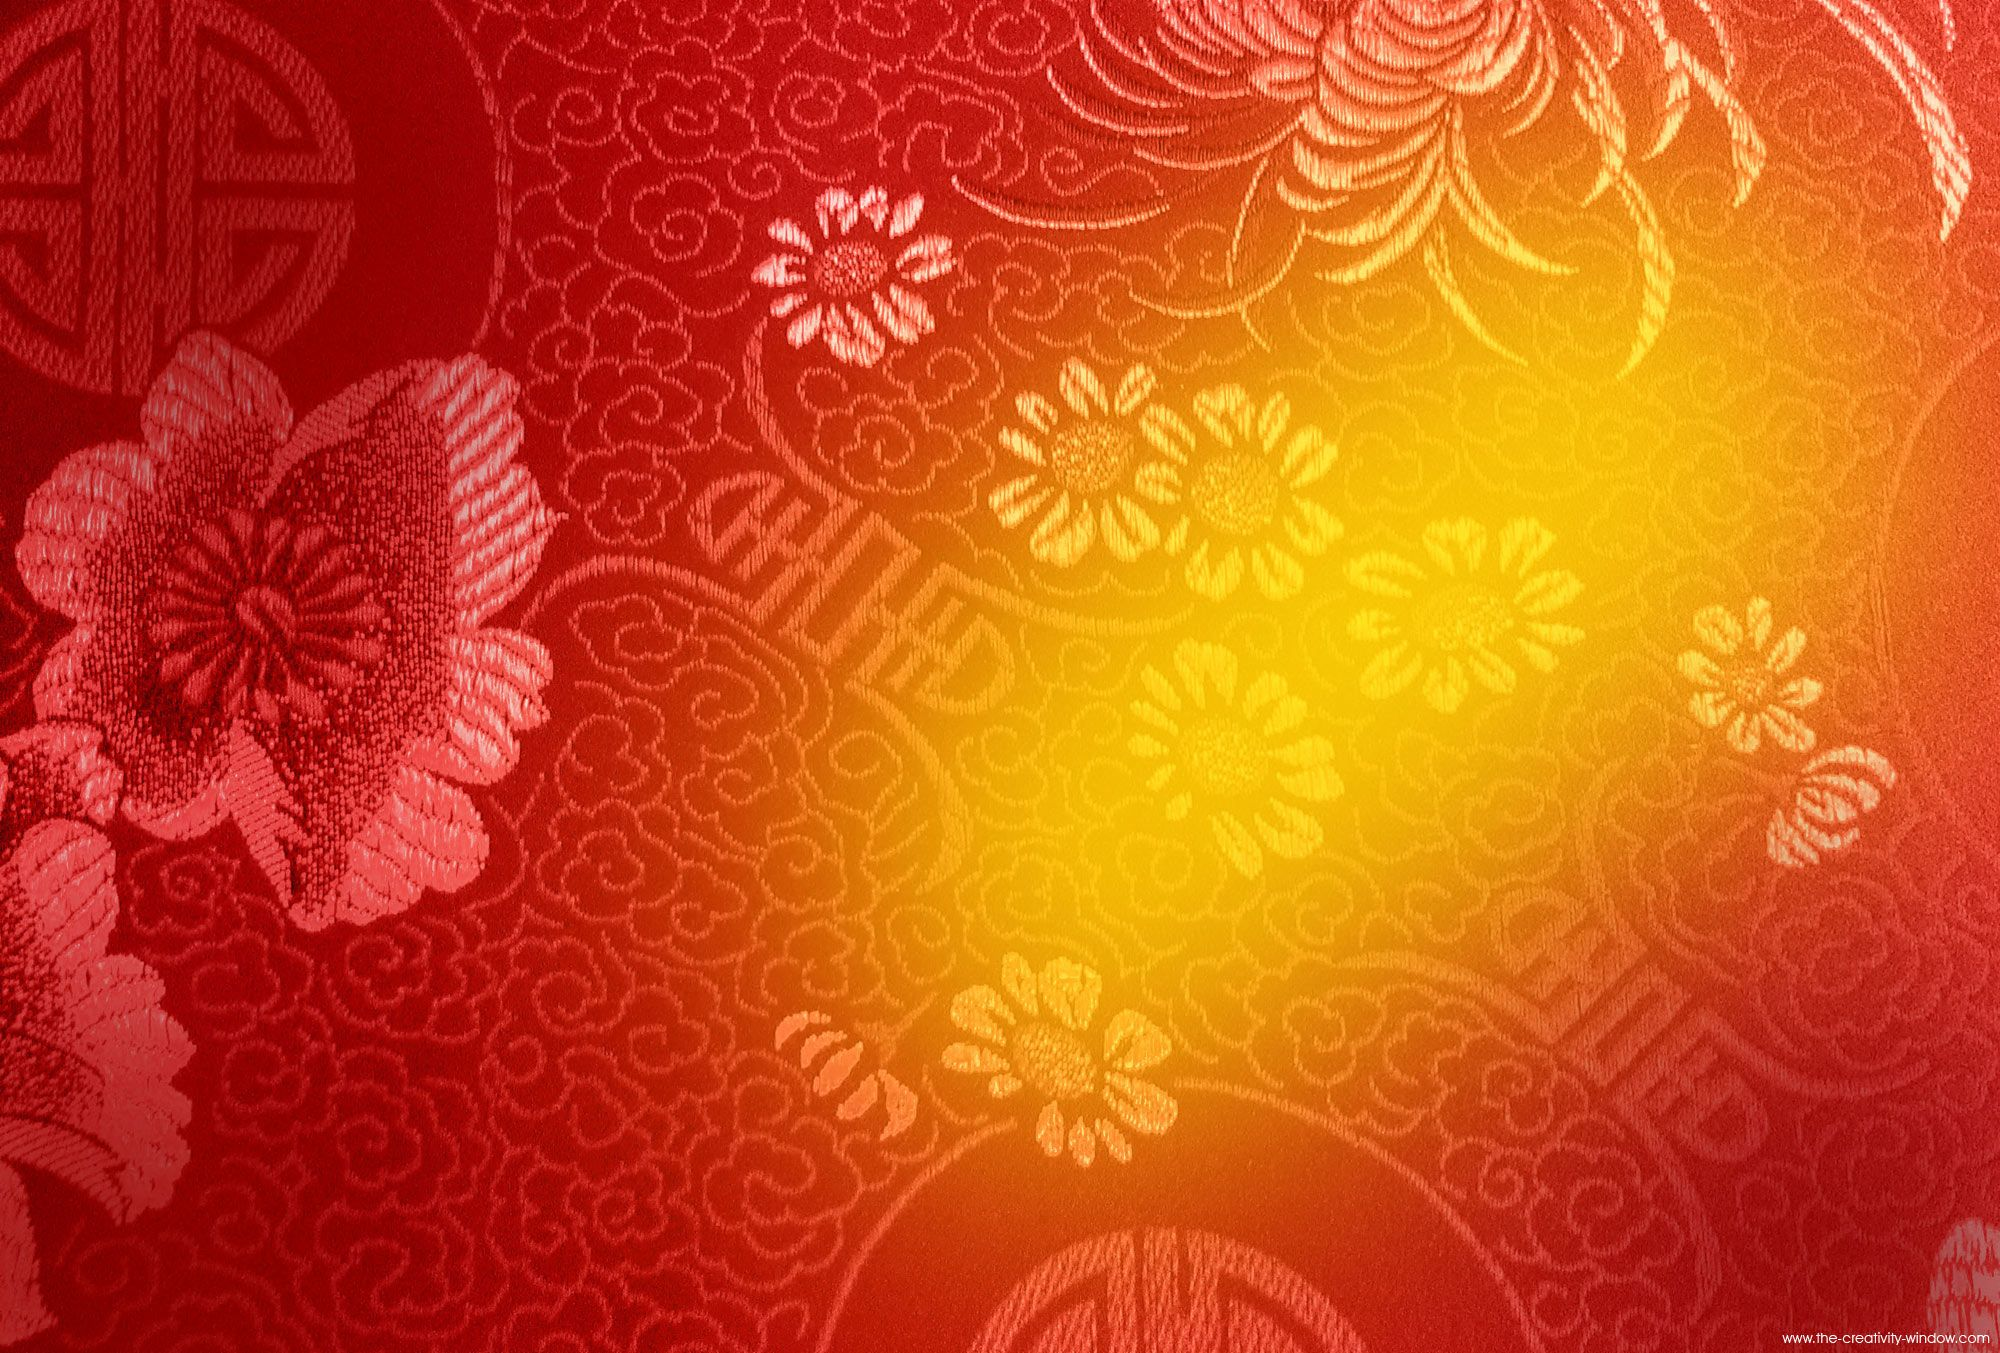 chinese new year 2013 - Google Search in 2019  Chinese new year